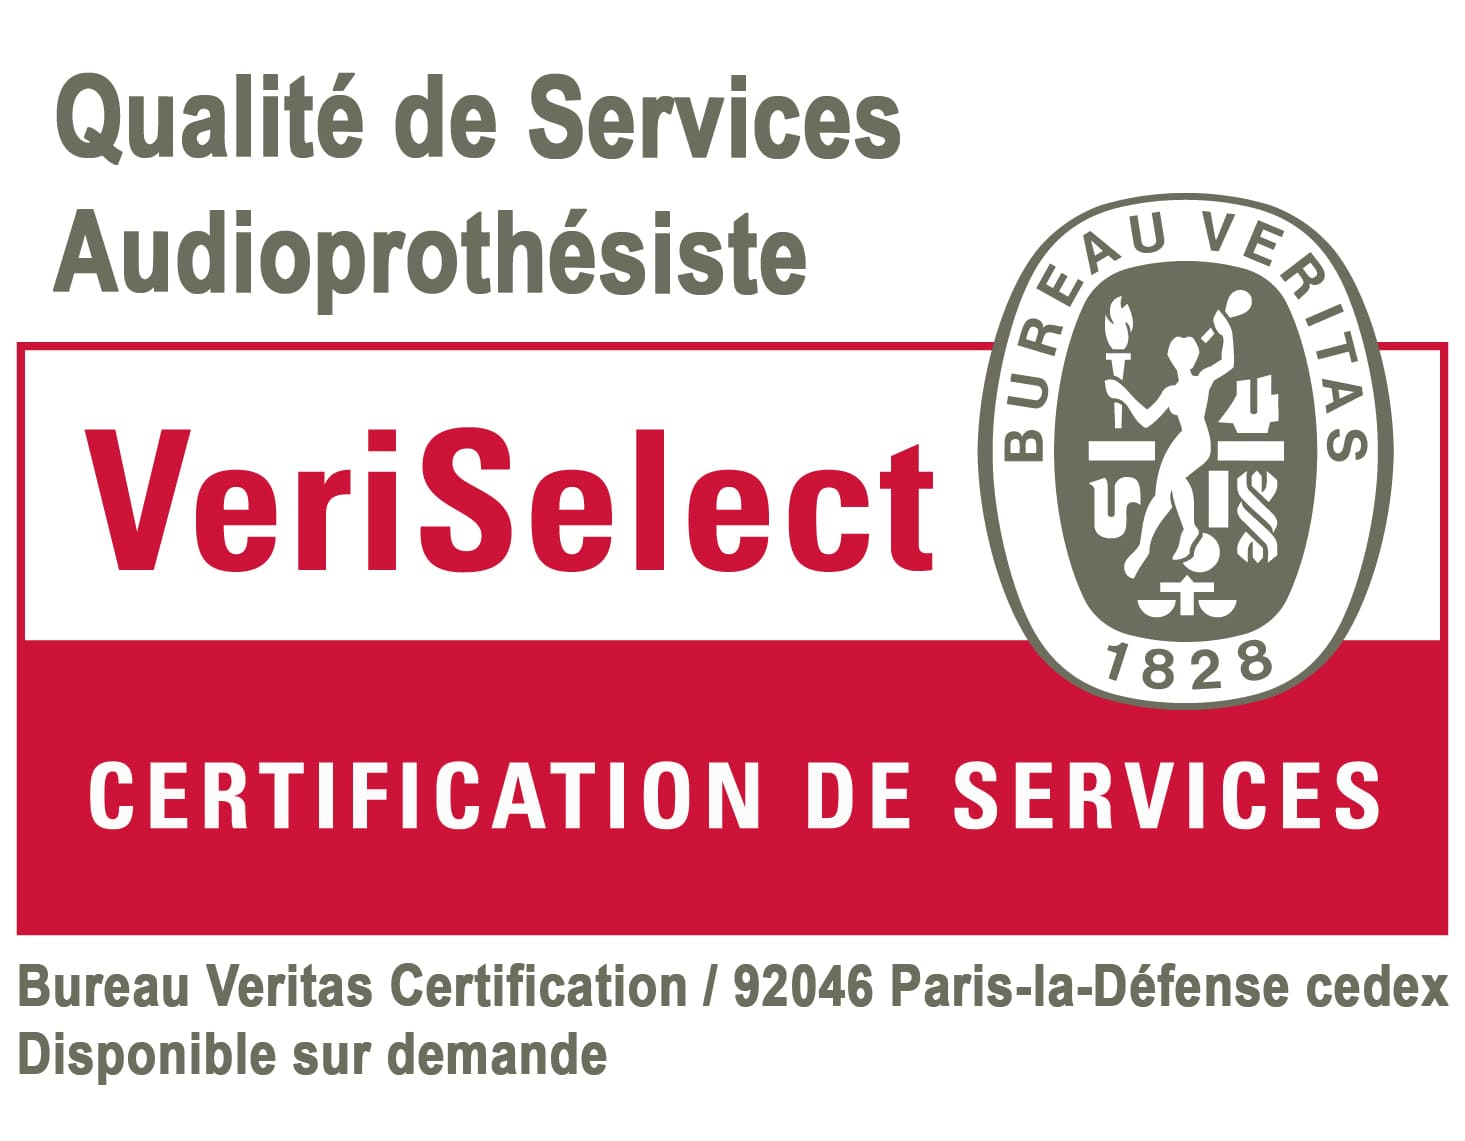 VeriSelect Audio Prothésiste 26